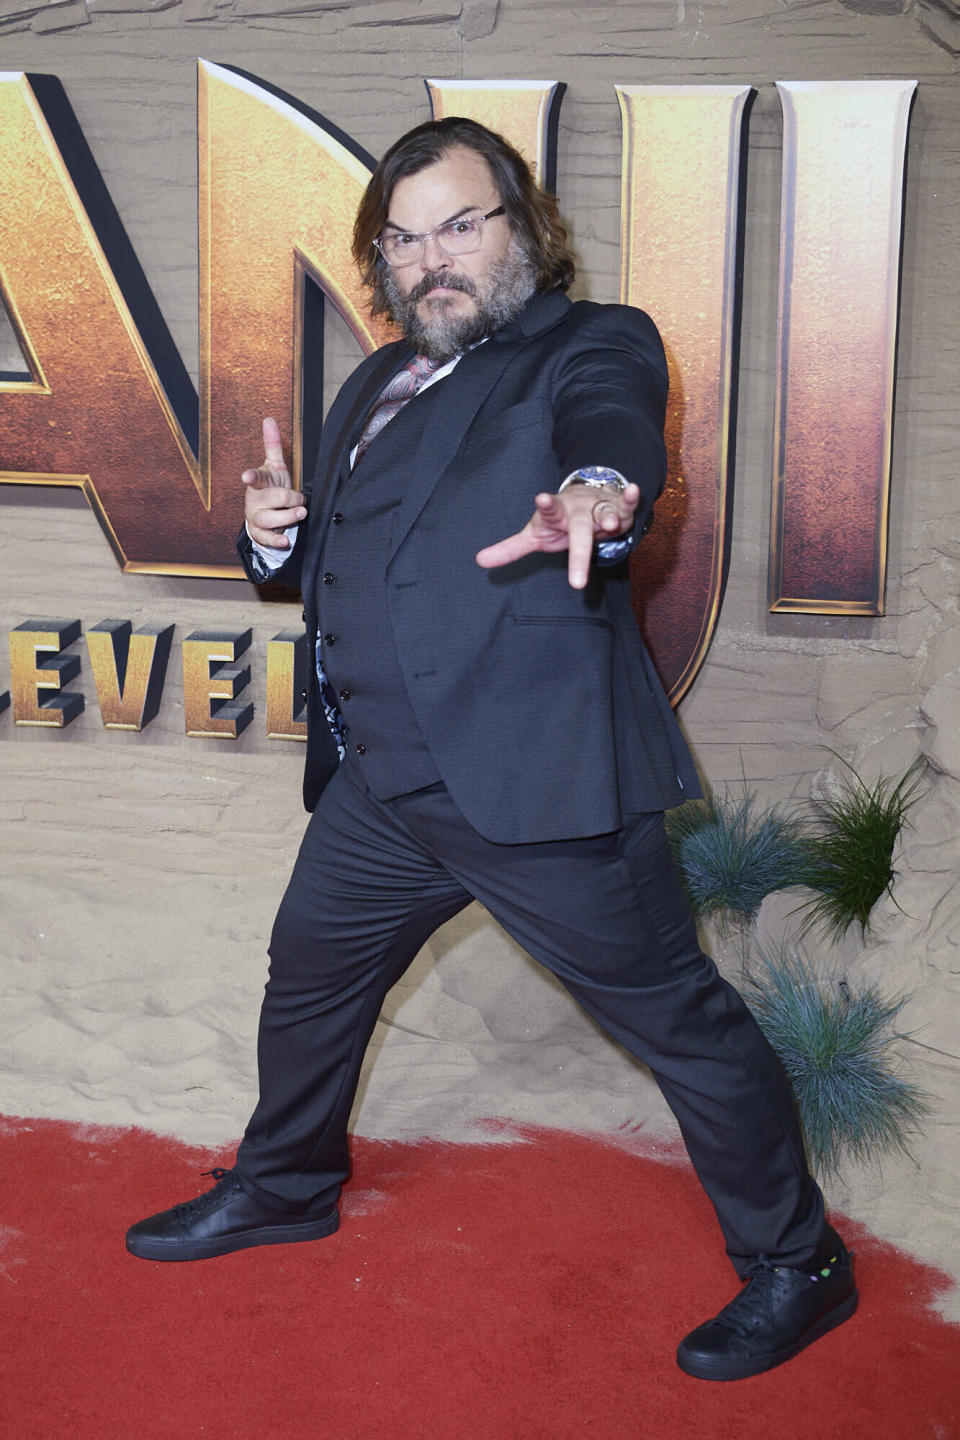 Photo by: KGC-247/STAR MAX/IPx 2019 12/5/19 Jack Black at the premiere of 'Jumanji: The Next Level' in London, England.